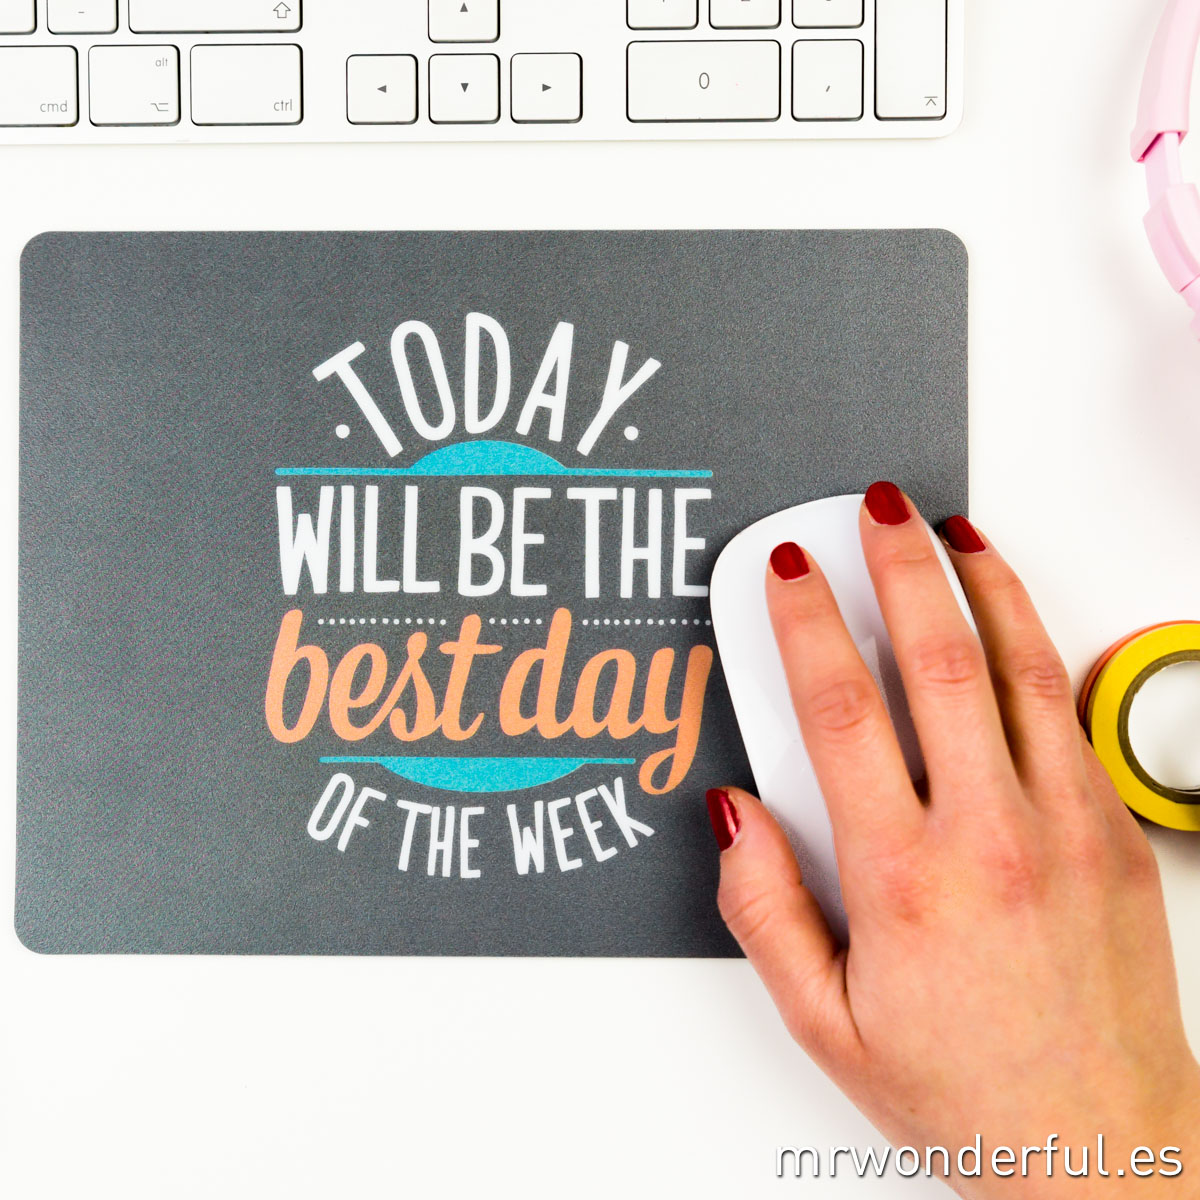 Mrwonderful_alfombrilla_today will be the best day of the week-11